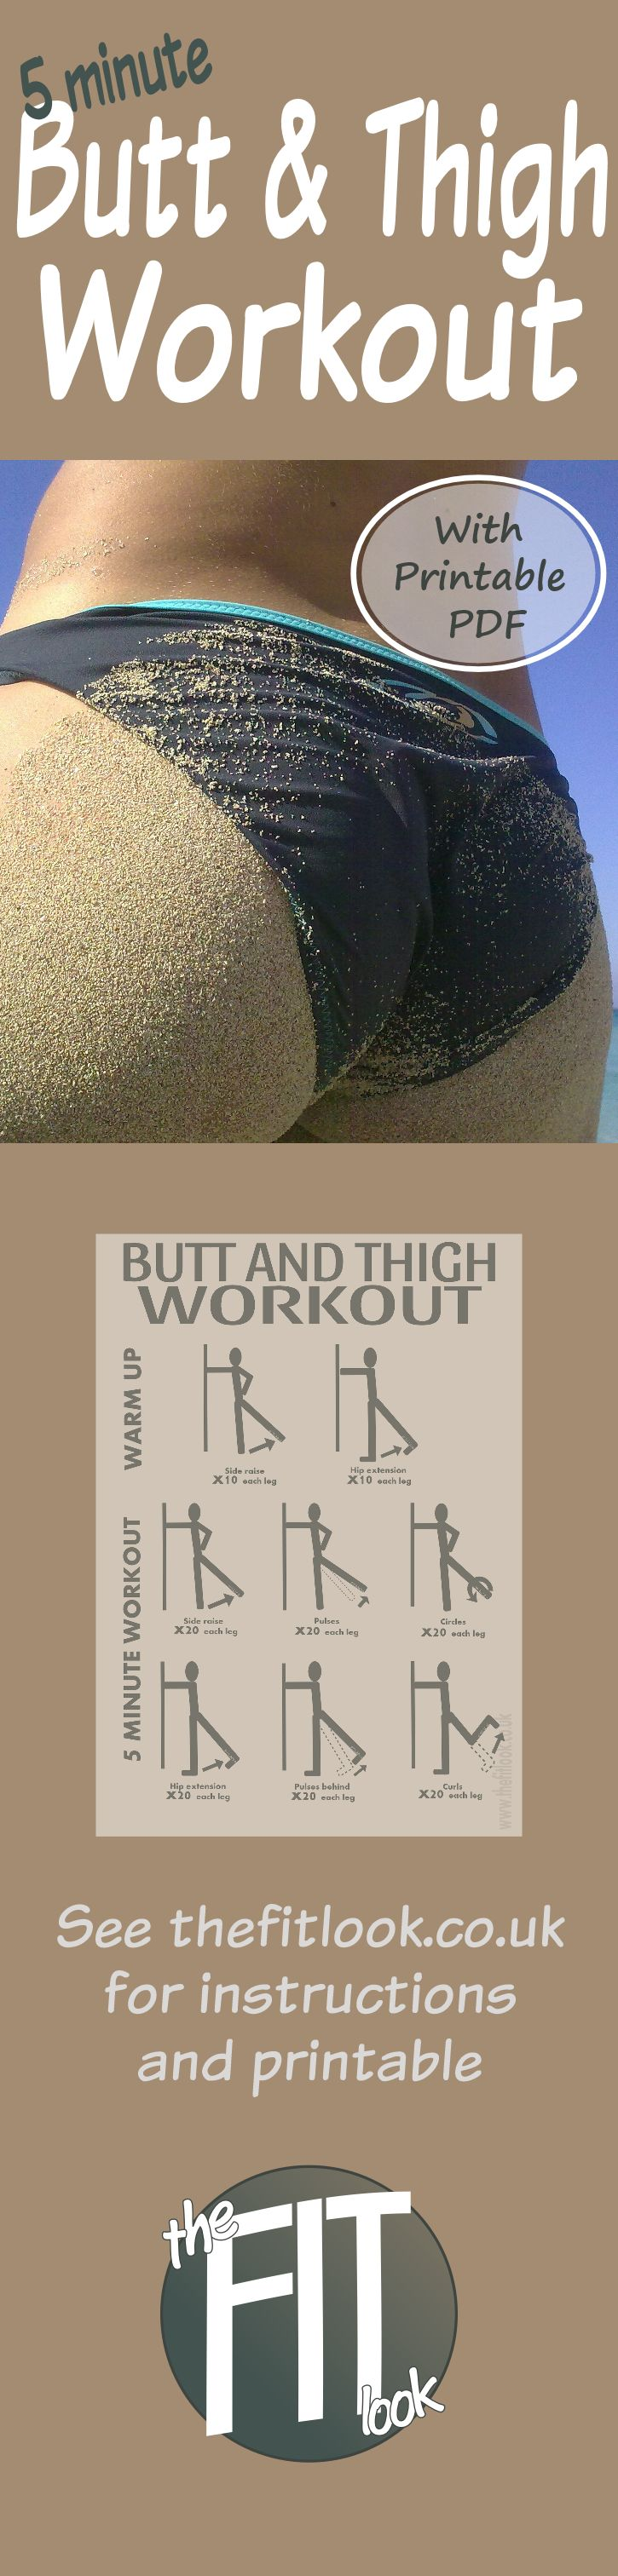 No equipment needed for this quick and easy butt and thigh firming workout and you don't even need to get down on the floor. All you need is a wall for support